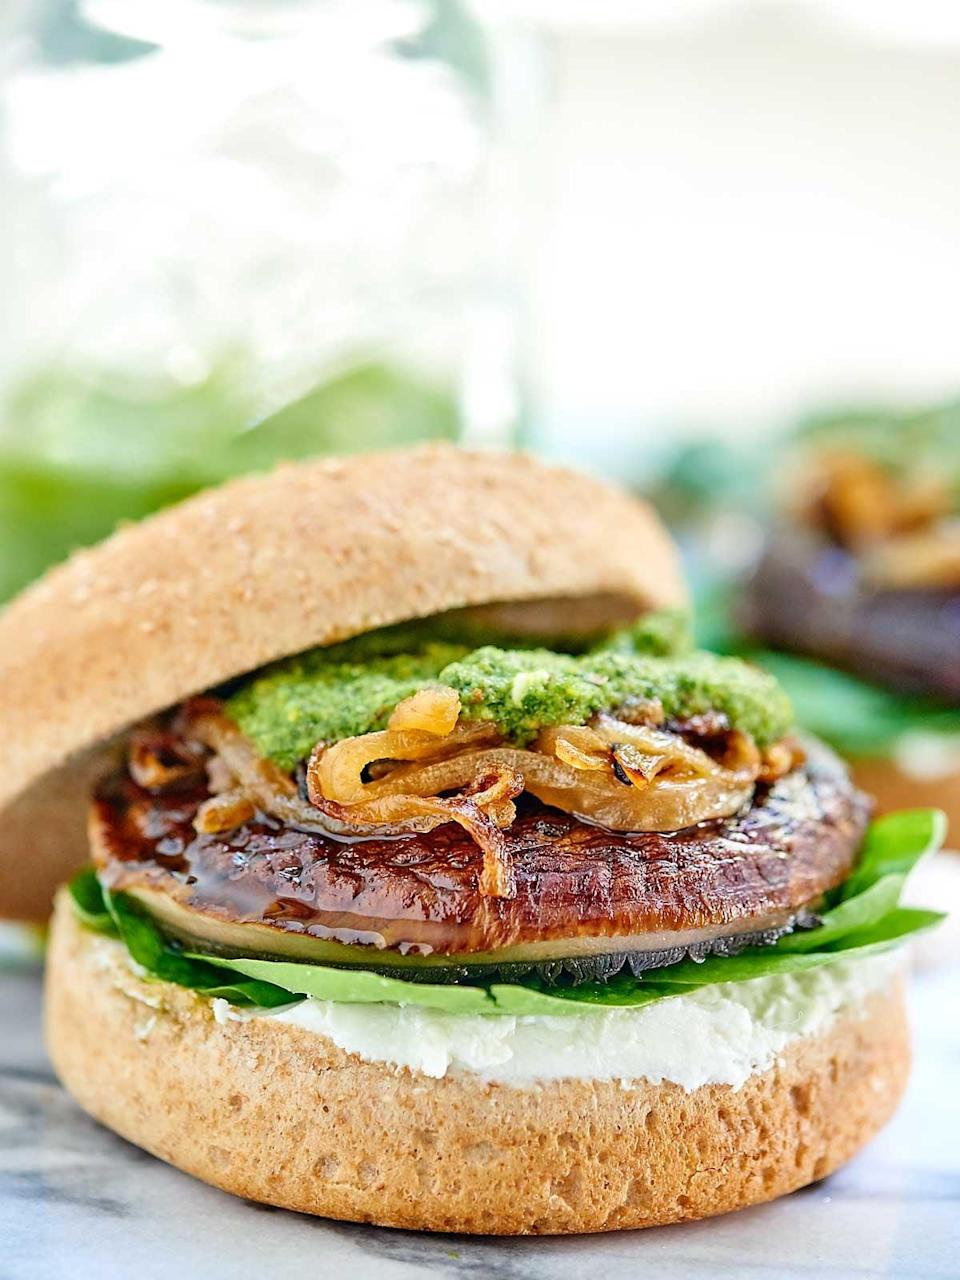 "<p>Topped with caramelized onions, homemade basil pesto, and goat cheese, these portobello mushroom burgers have all the best flavors packed into one. The rich pesto and creamy goat cheese are sure to make you swoon.</p> <p><strong>Get the recipe</strong>: <a href=""https://showmetheyummy.com/portobello-mushroom-burger/"" class=""link rapid-noclick-resp"" rel=""nofollow noopener"" target=""_blank"" data-ylk=""slk:portobello mushroom burger"">portobello mushroom burger</a></p>"